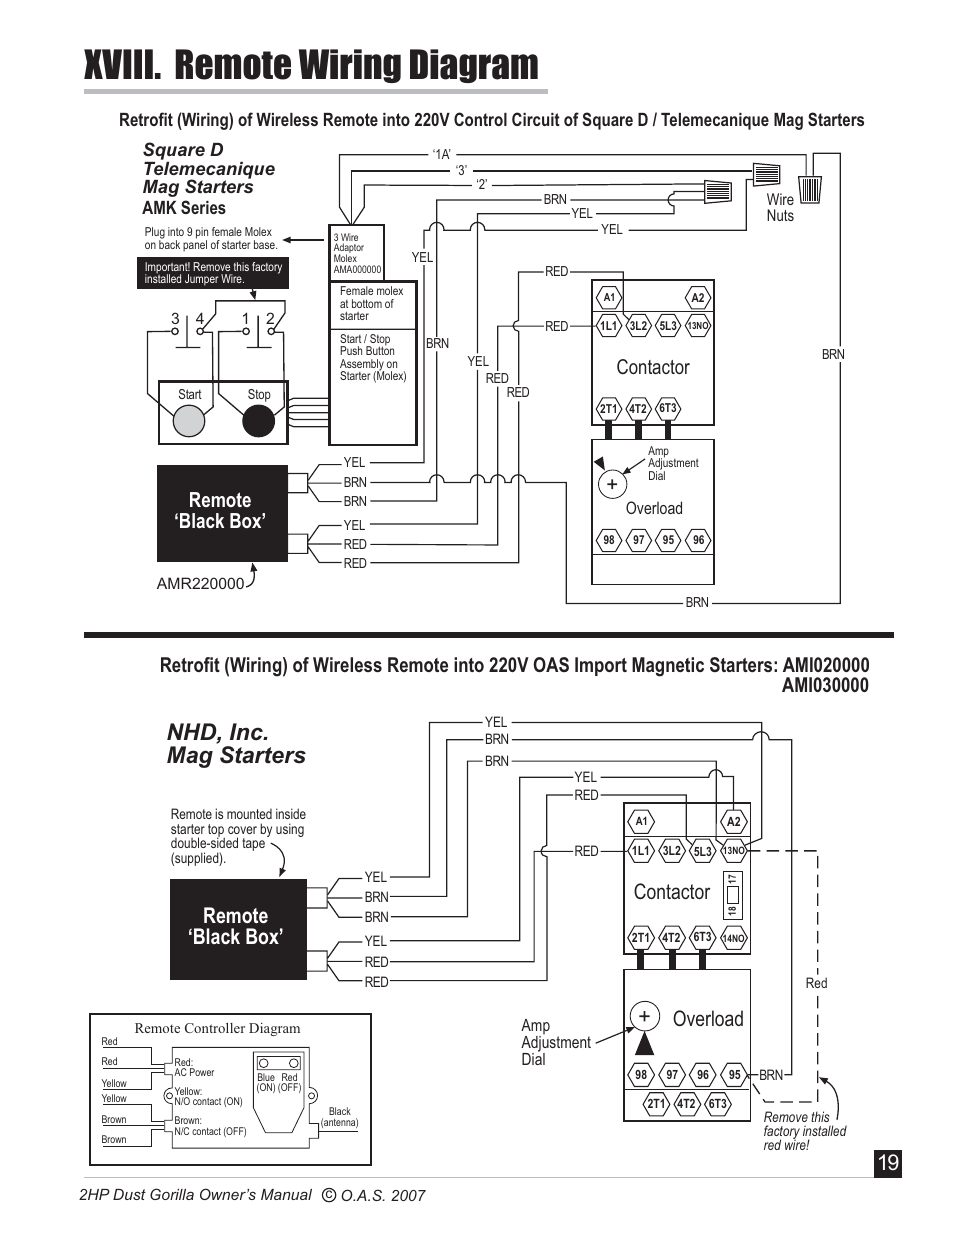 oneida-air-systems-super-dust-gorilla-page20  Wire Start Stop Diagram on push button start stop diagram, 2 wire start stop diagram, 3-way switch diagram, contactor wiring diagram, start stop station diagram, motor starter wiring diagram, stop start motor diagram, motor start circuit diagram, 5 wire start stop diagram, 3 wire tail light ezgo, start stop switch diagram, 3 phase motor control wiring diagram,